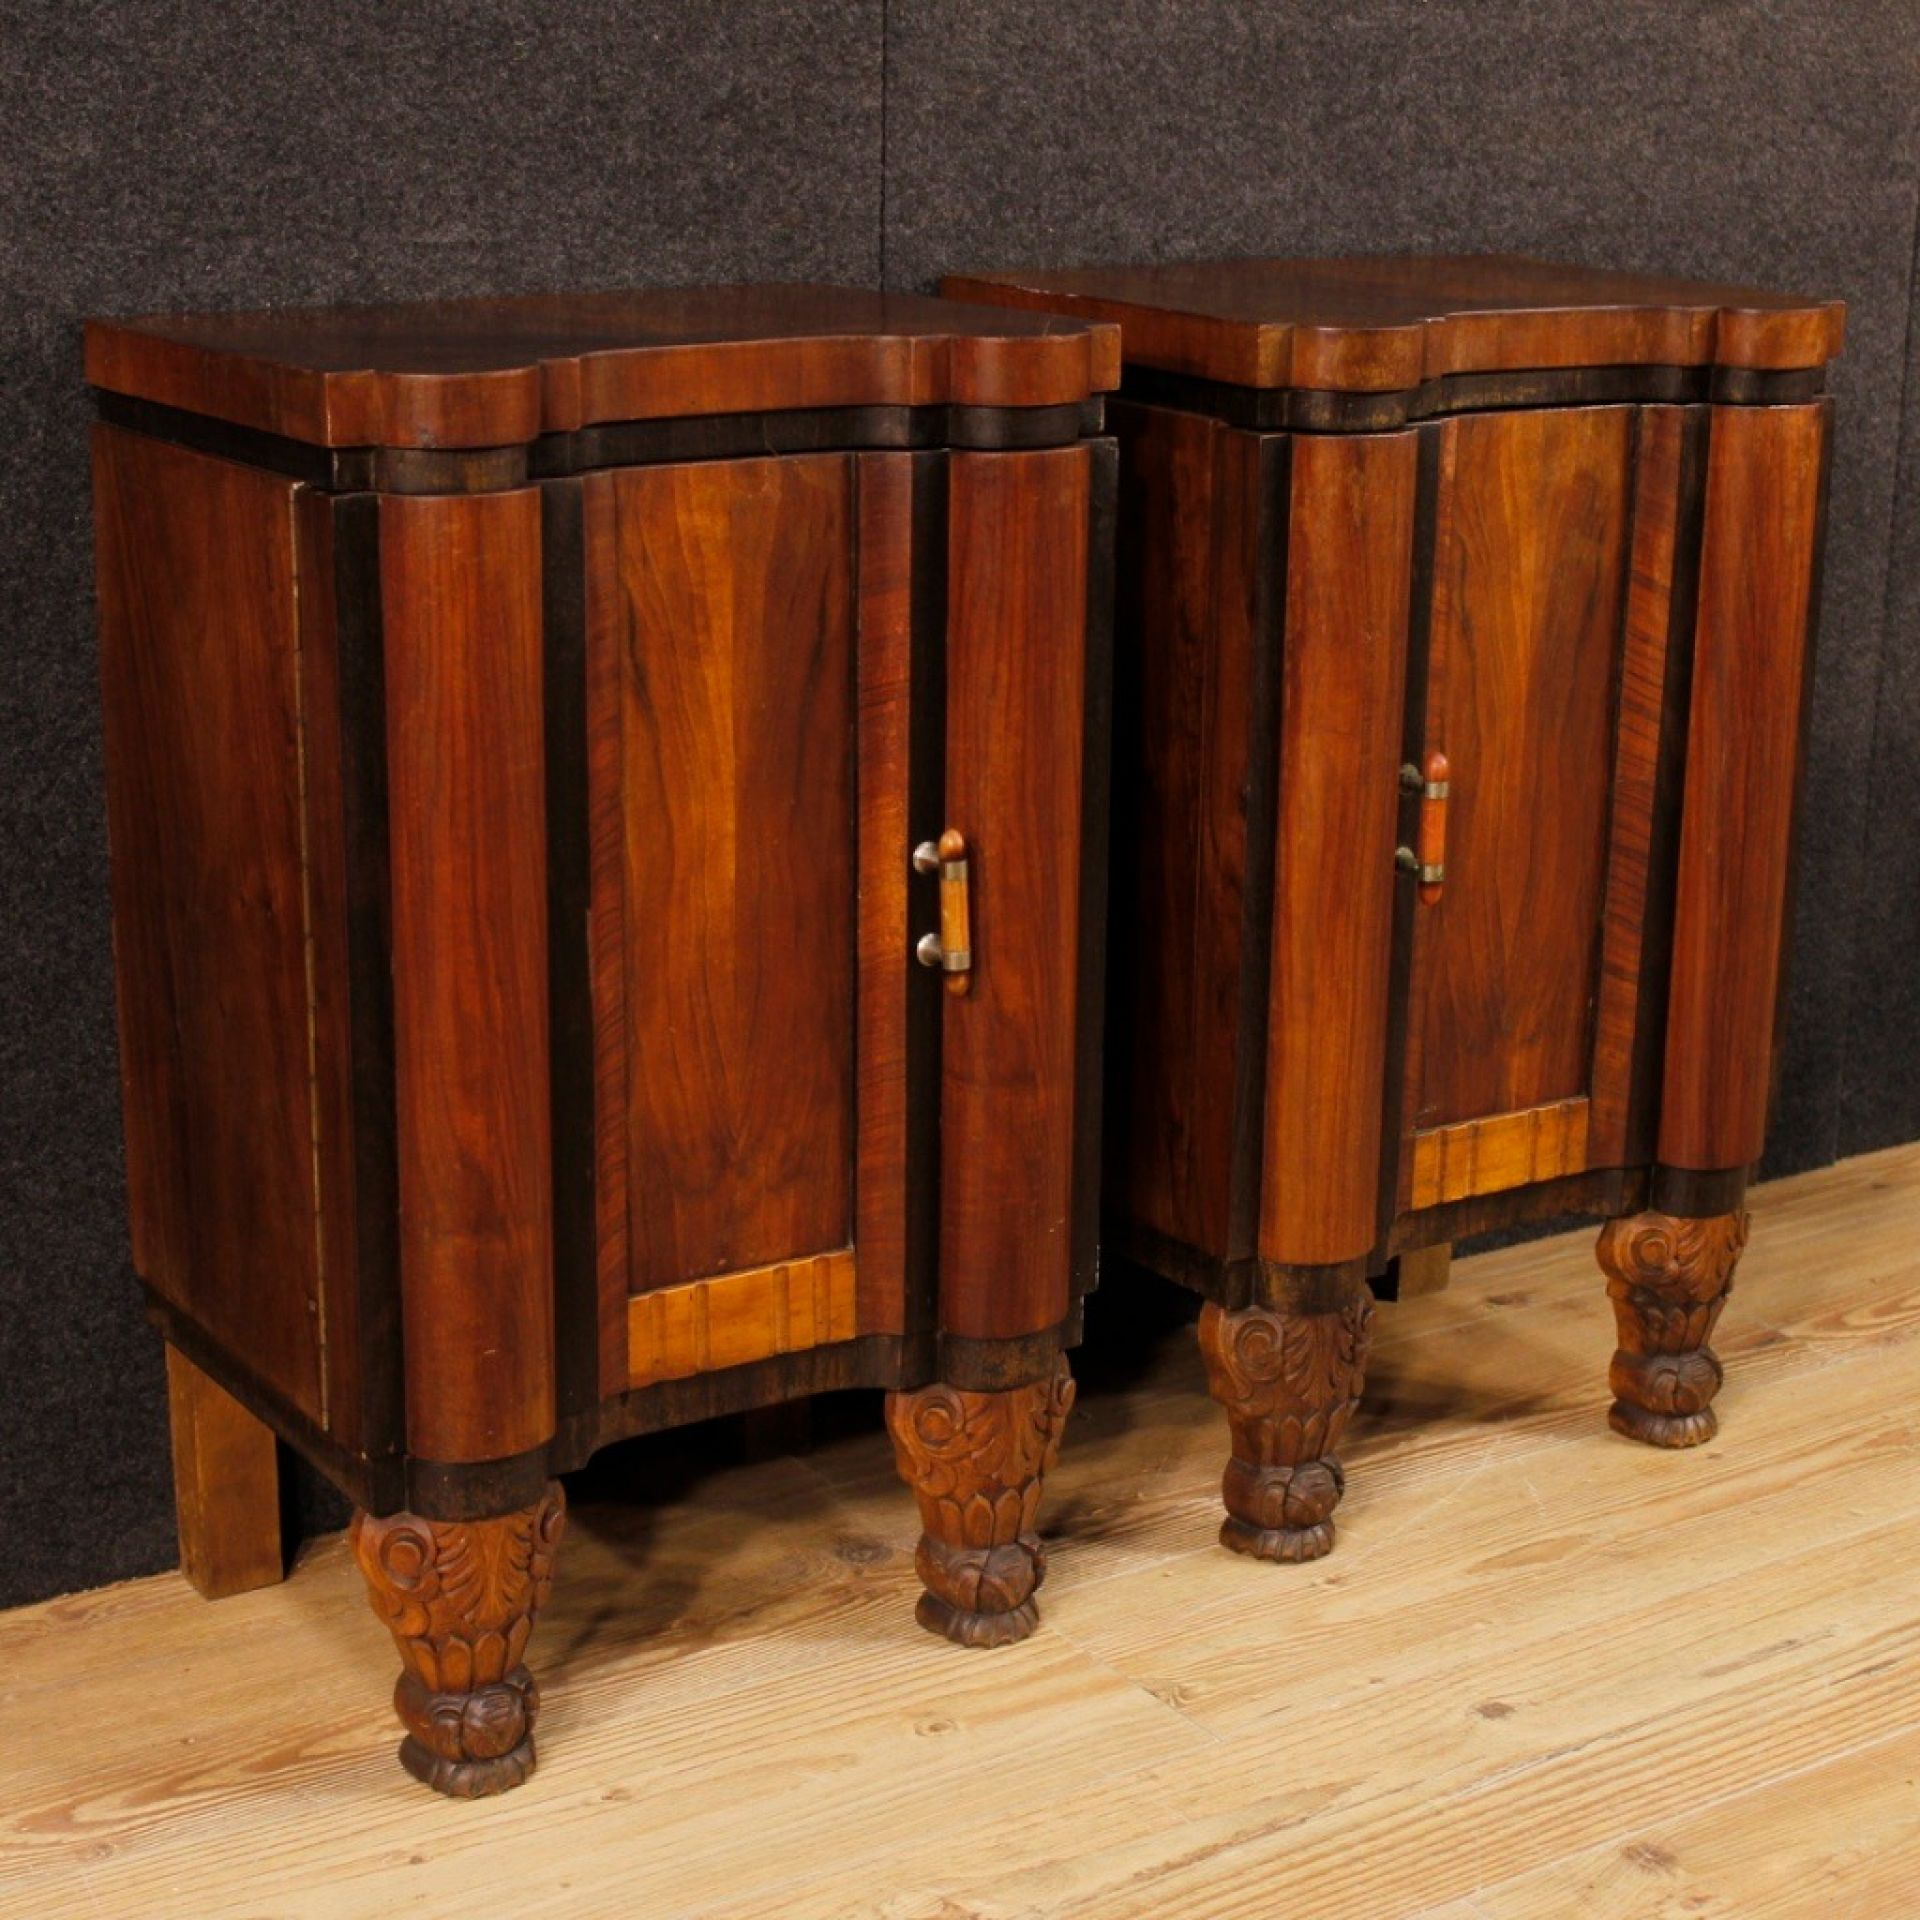 Pair Of French Wooden Bedside Tables In Art Deco Style From 20th Century